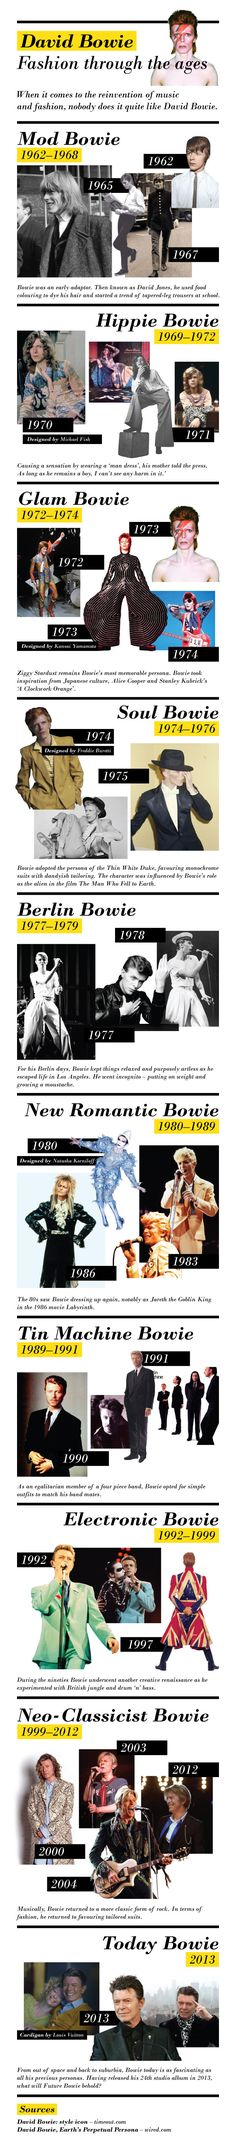 David Bowie Fashion Through the Ages #infographic #Fashion #Lifestyle #History